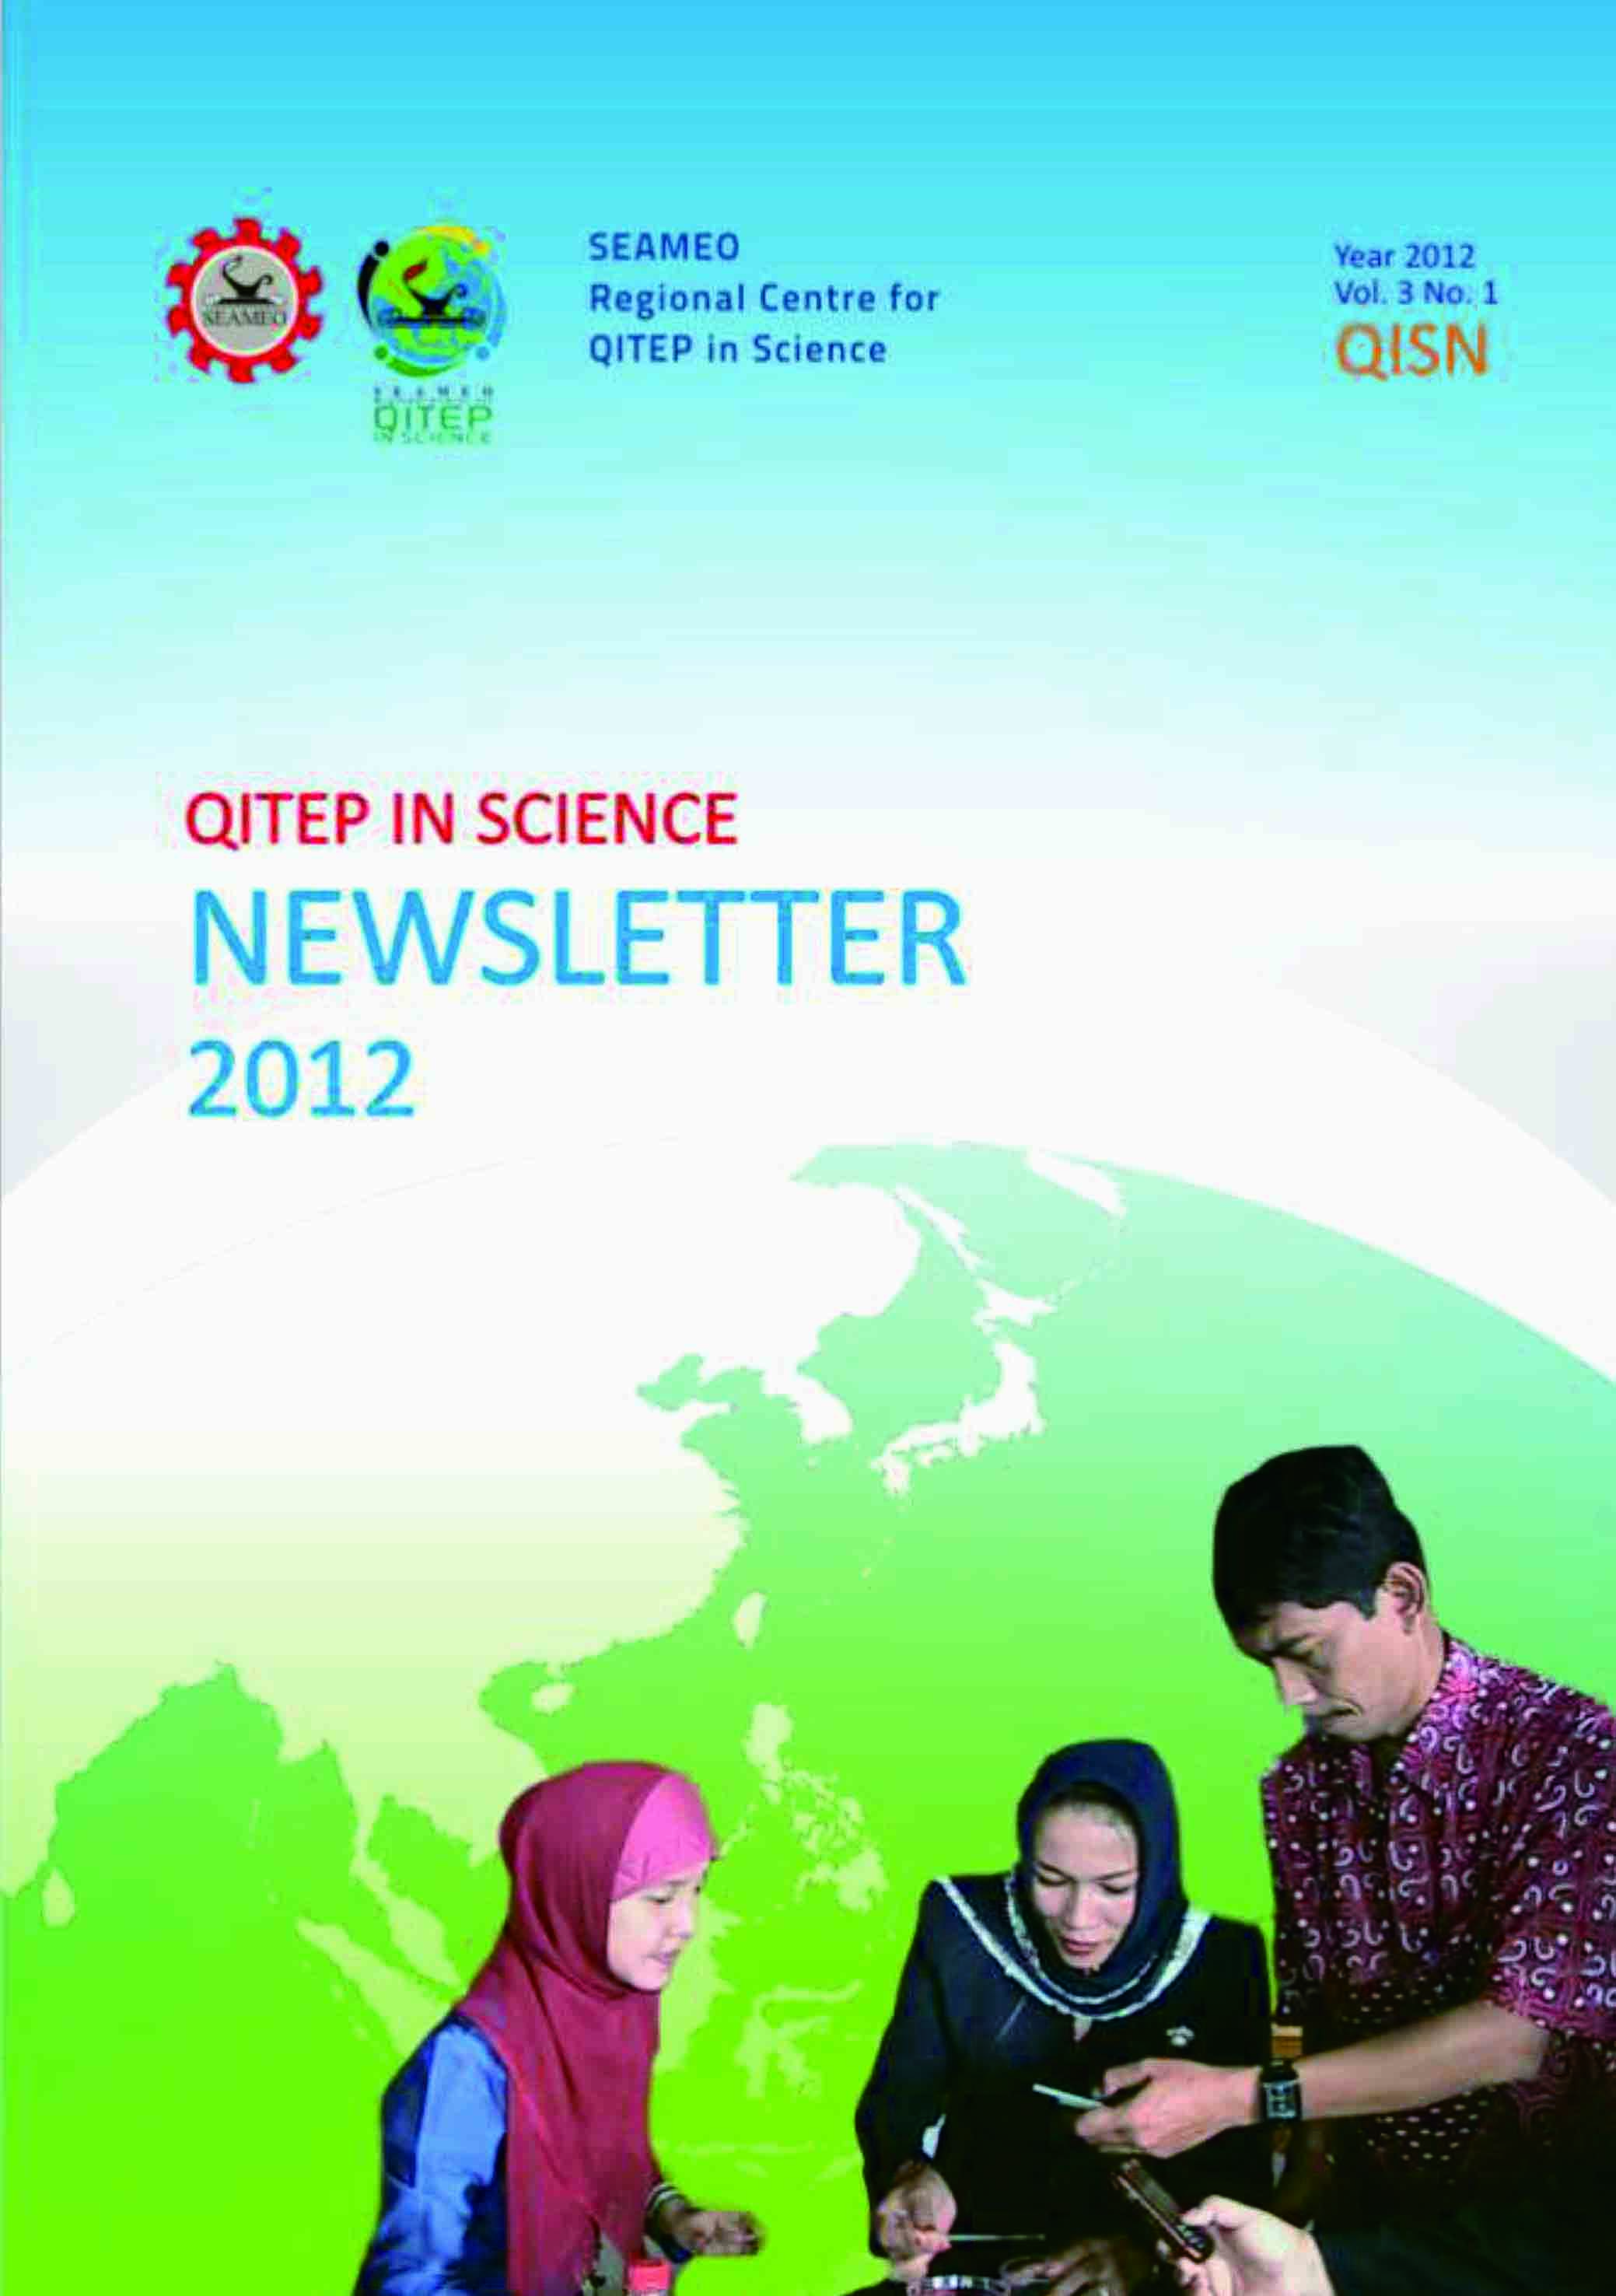 SEAQIS Newsletter Vol 3 No 1 2012